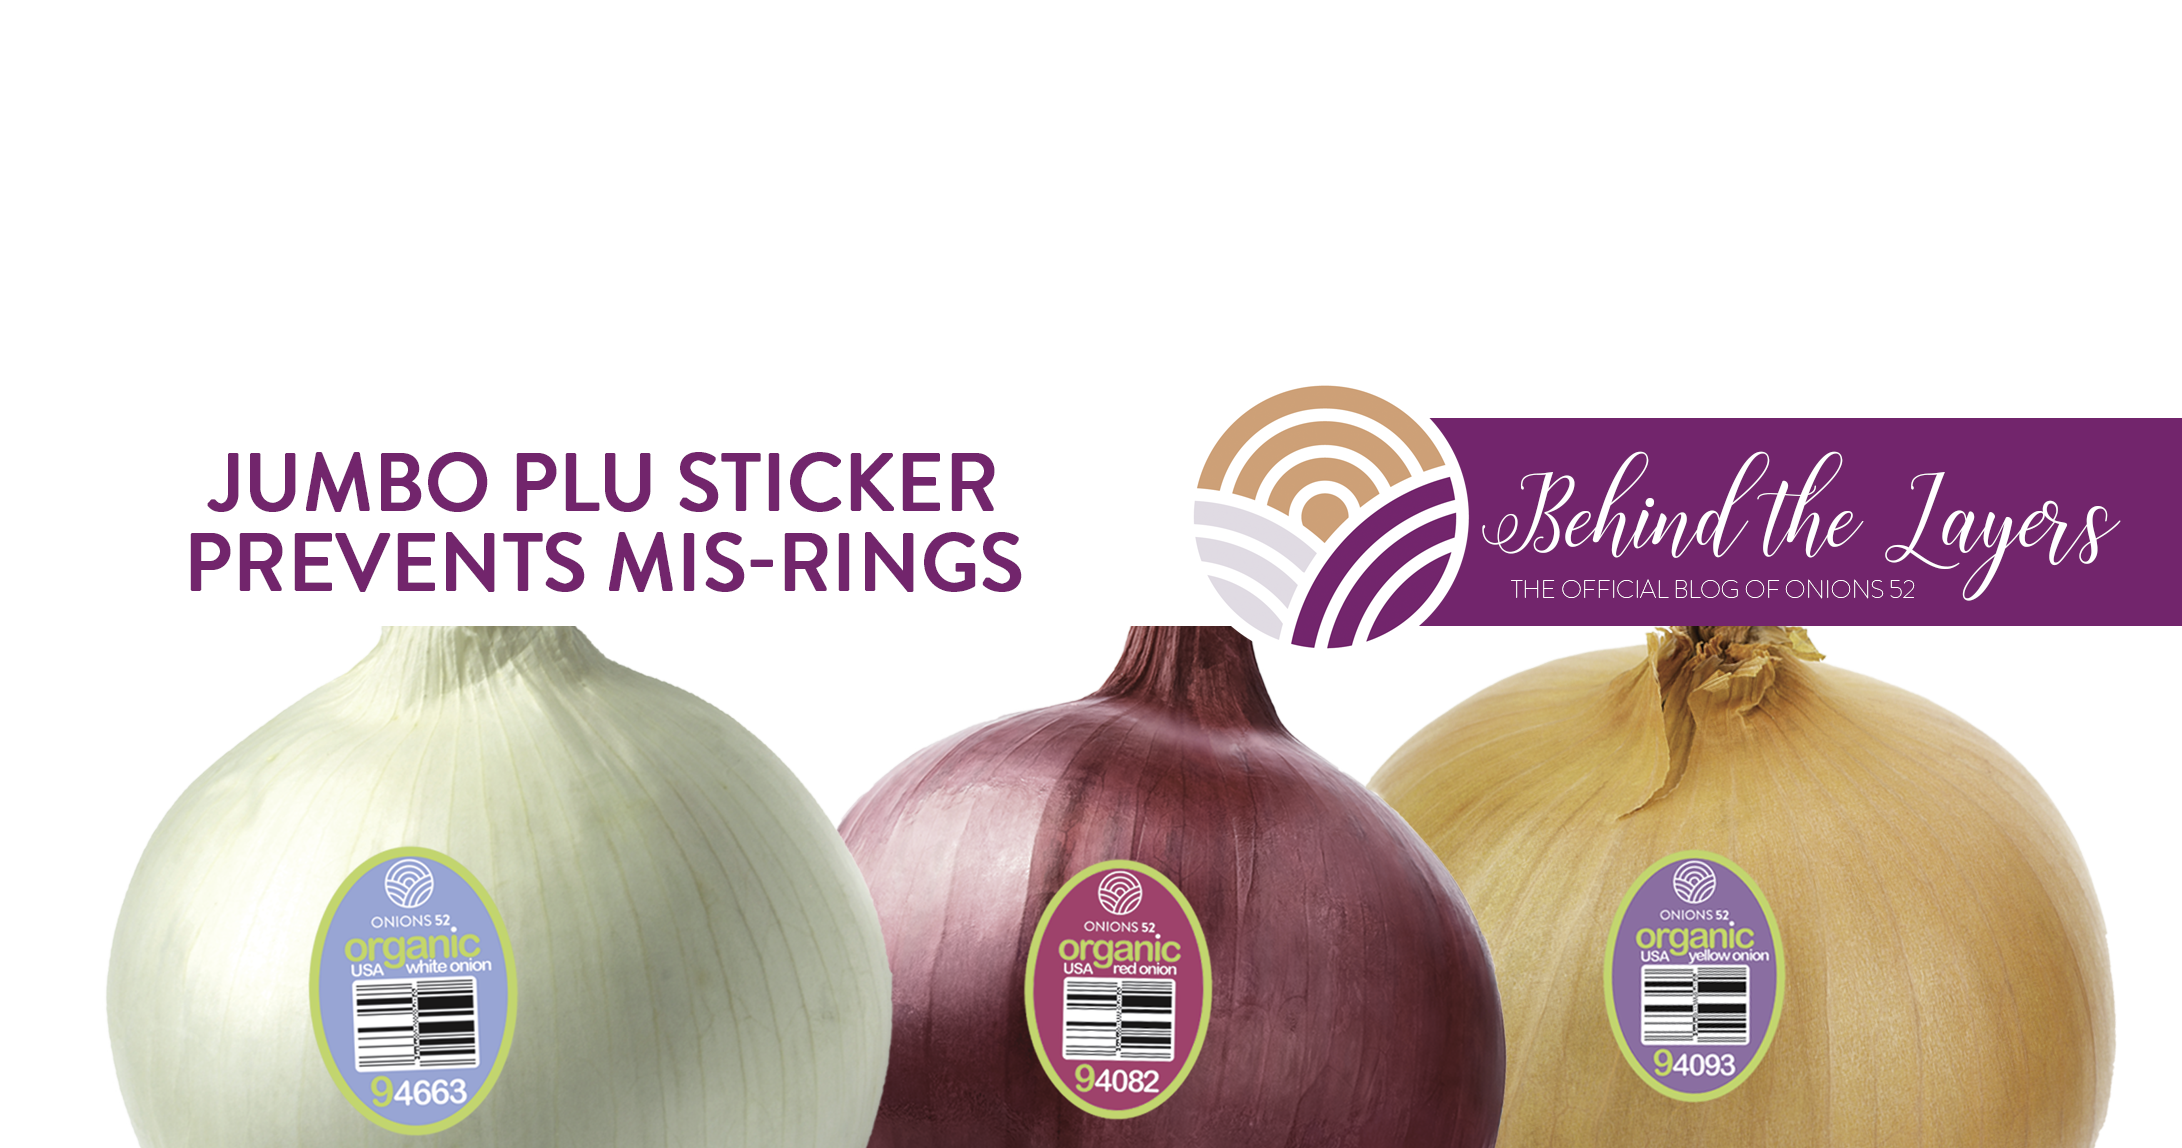 Onions 52 Jumbo PLU Sticker Prevents Mis-Rings at Register